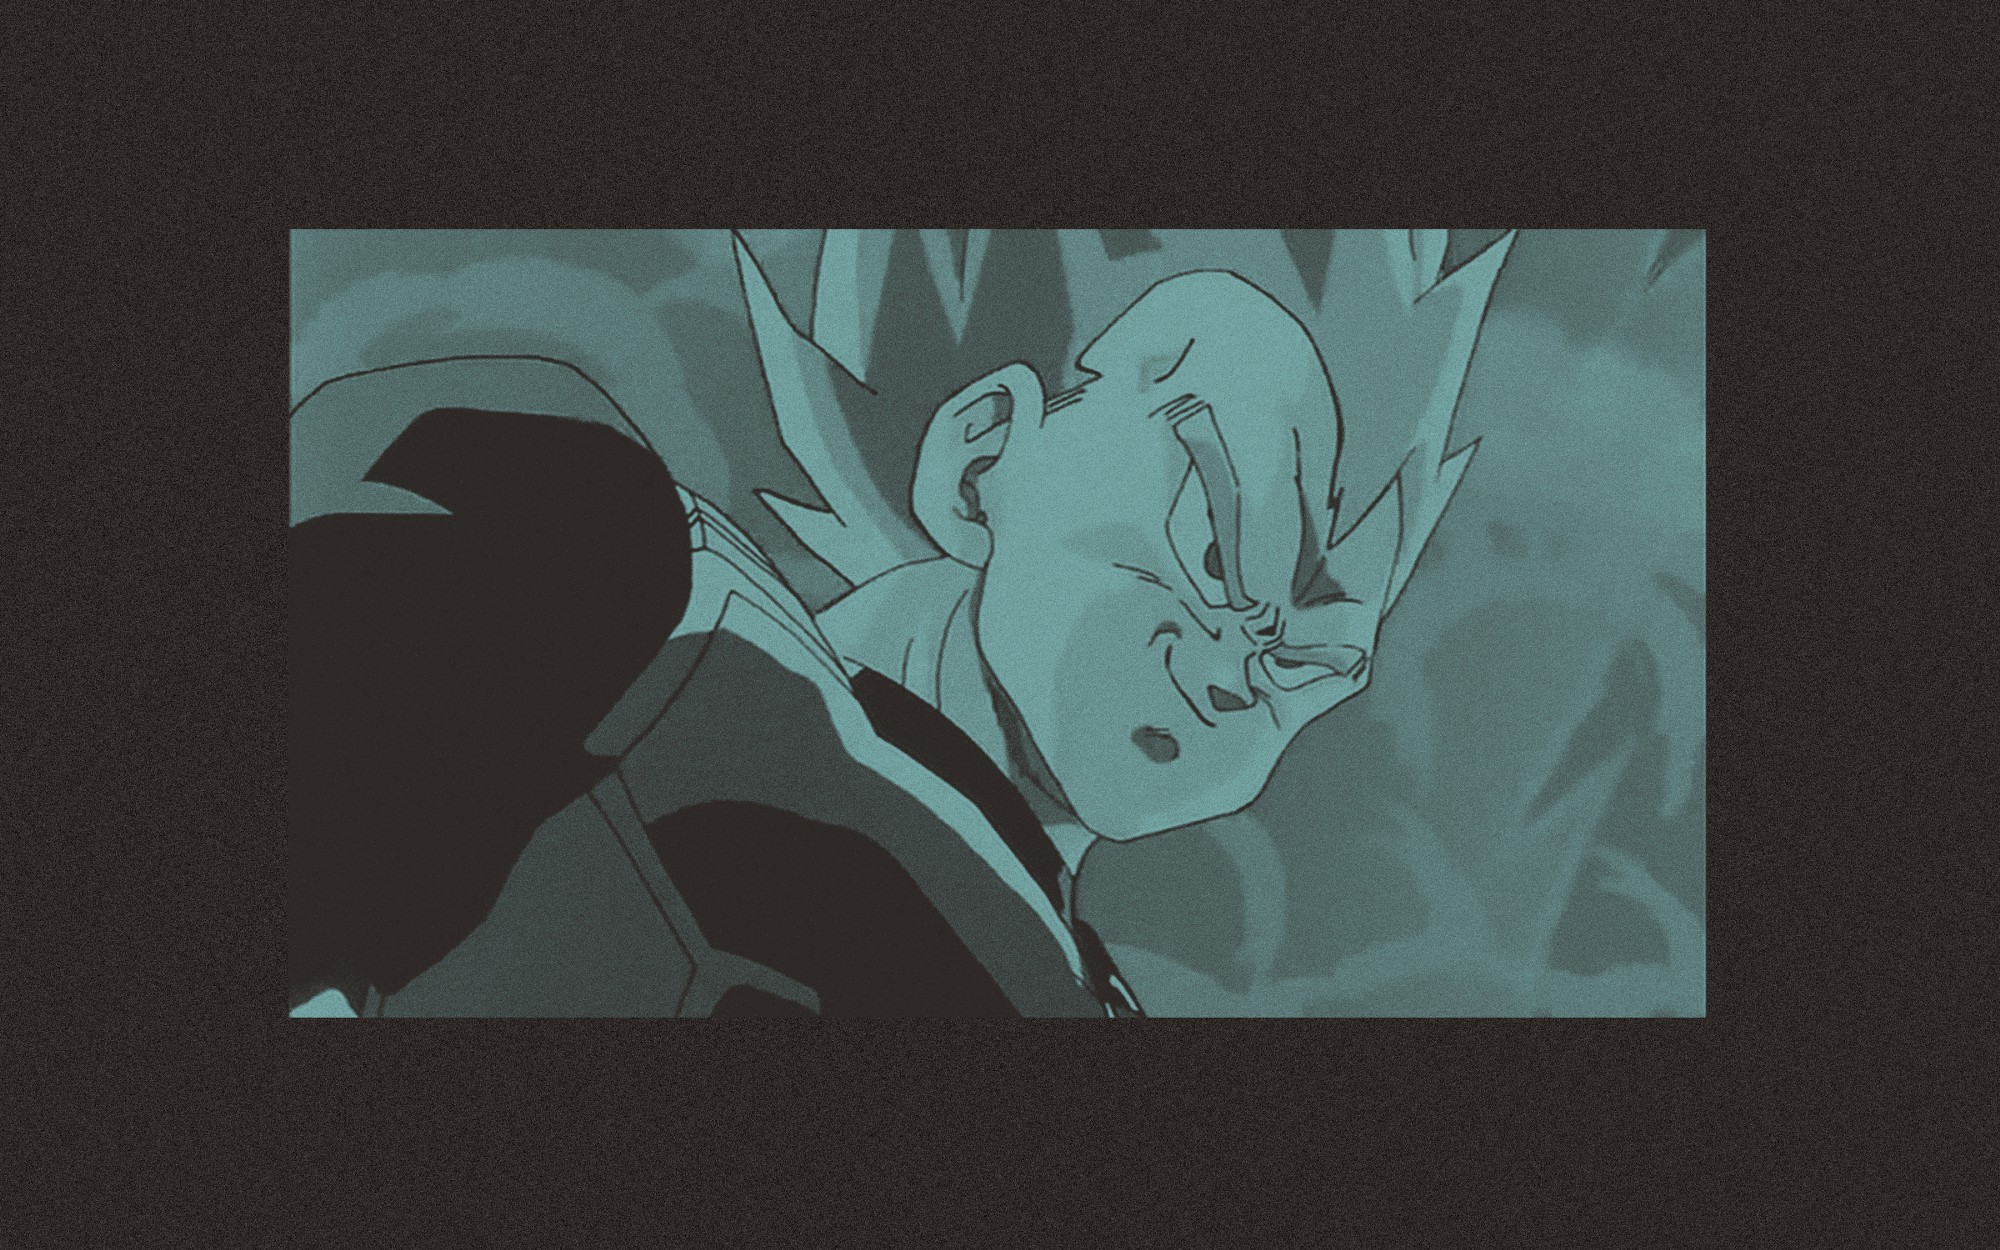 A teal edit of a closeup of Vegeta from Dragon Ball Z. He is in Super Saiyan mode and is smirking.